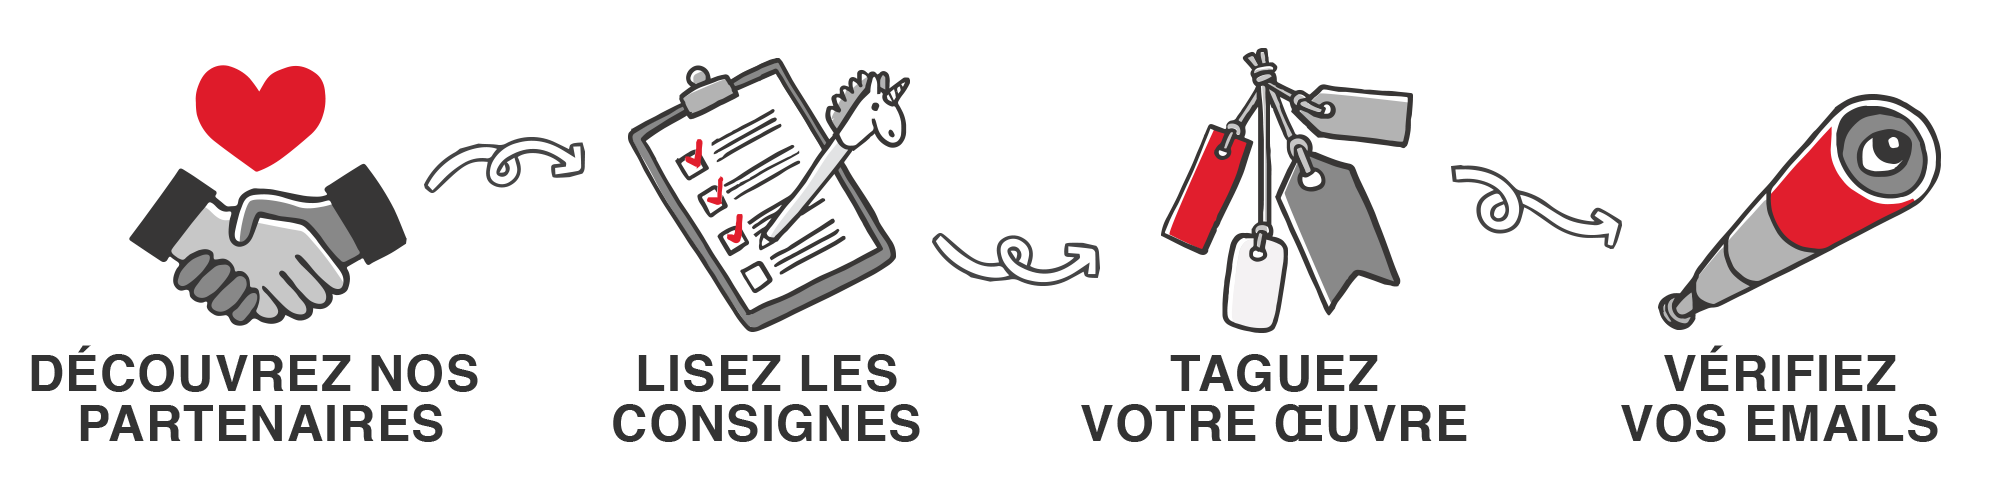 partner-program_icons_fr.png